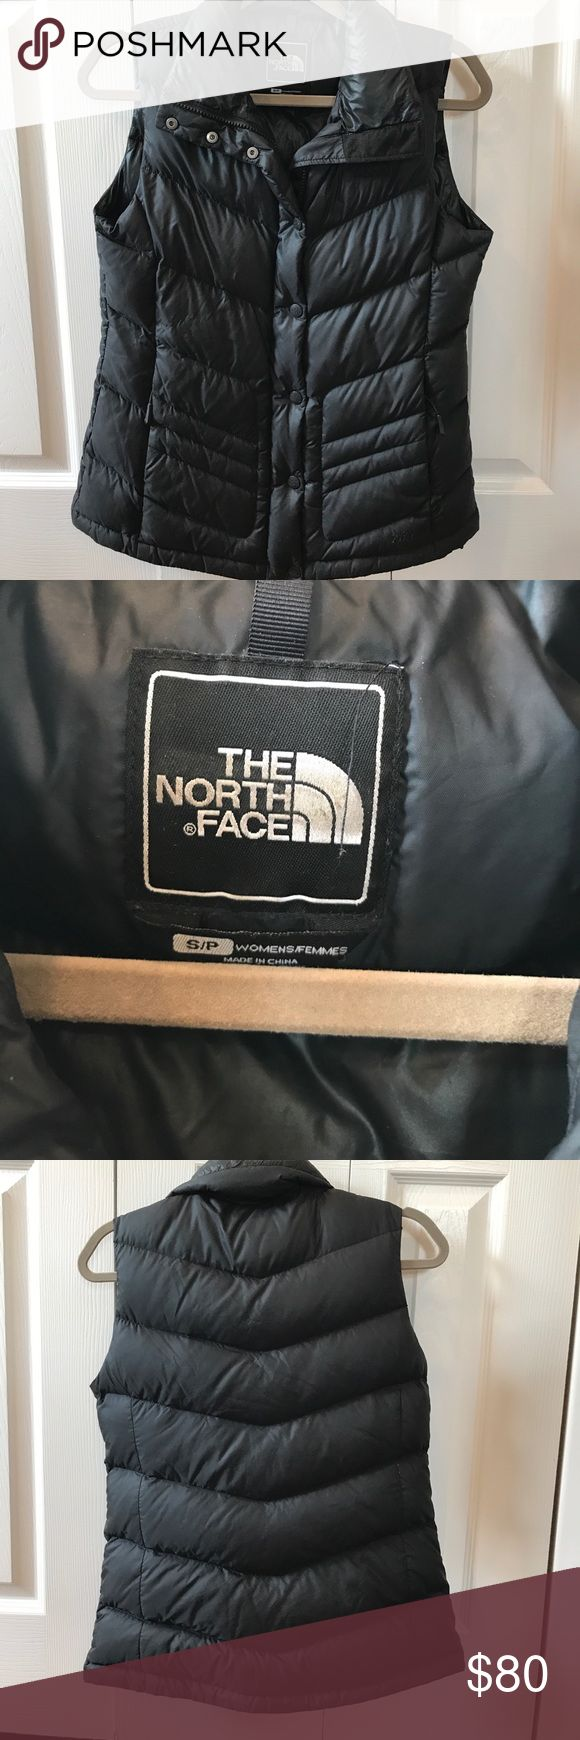 Women's north face vest! In amazing condition! The North Face Jackets & Coats Vests